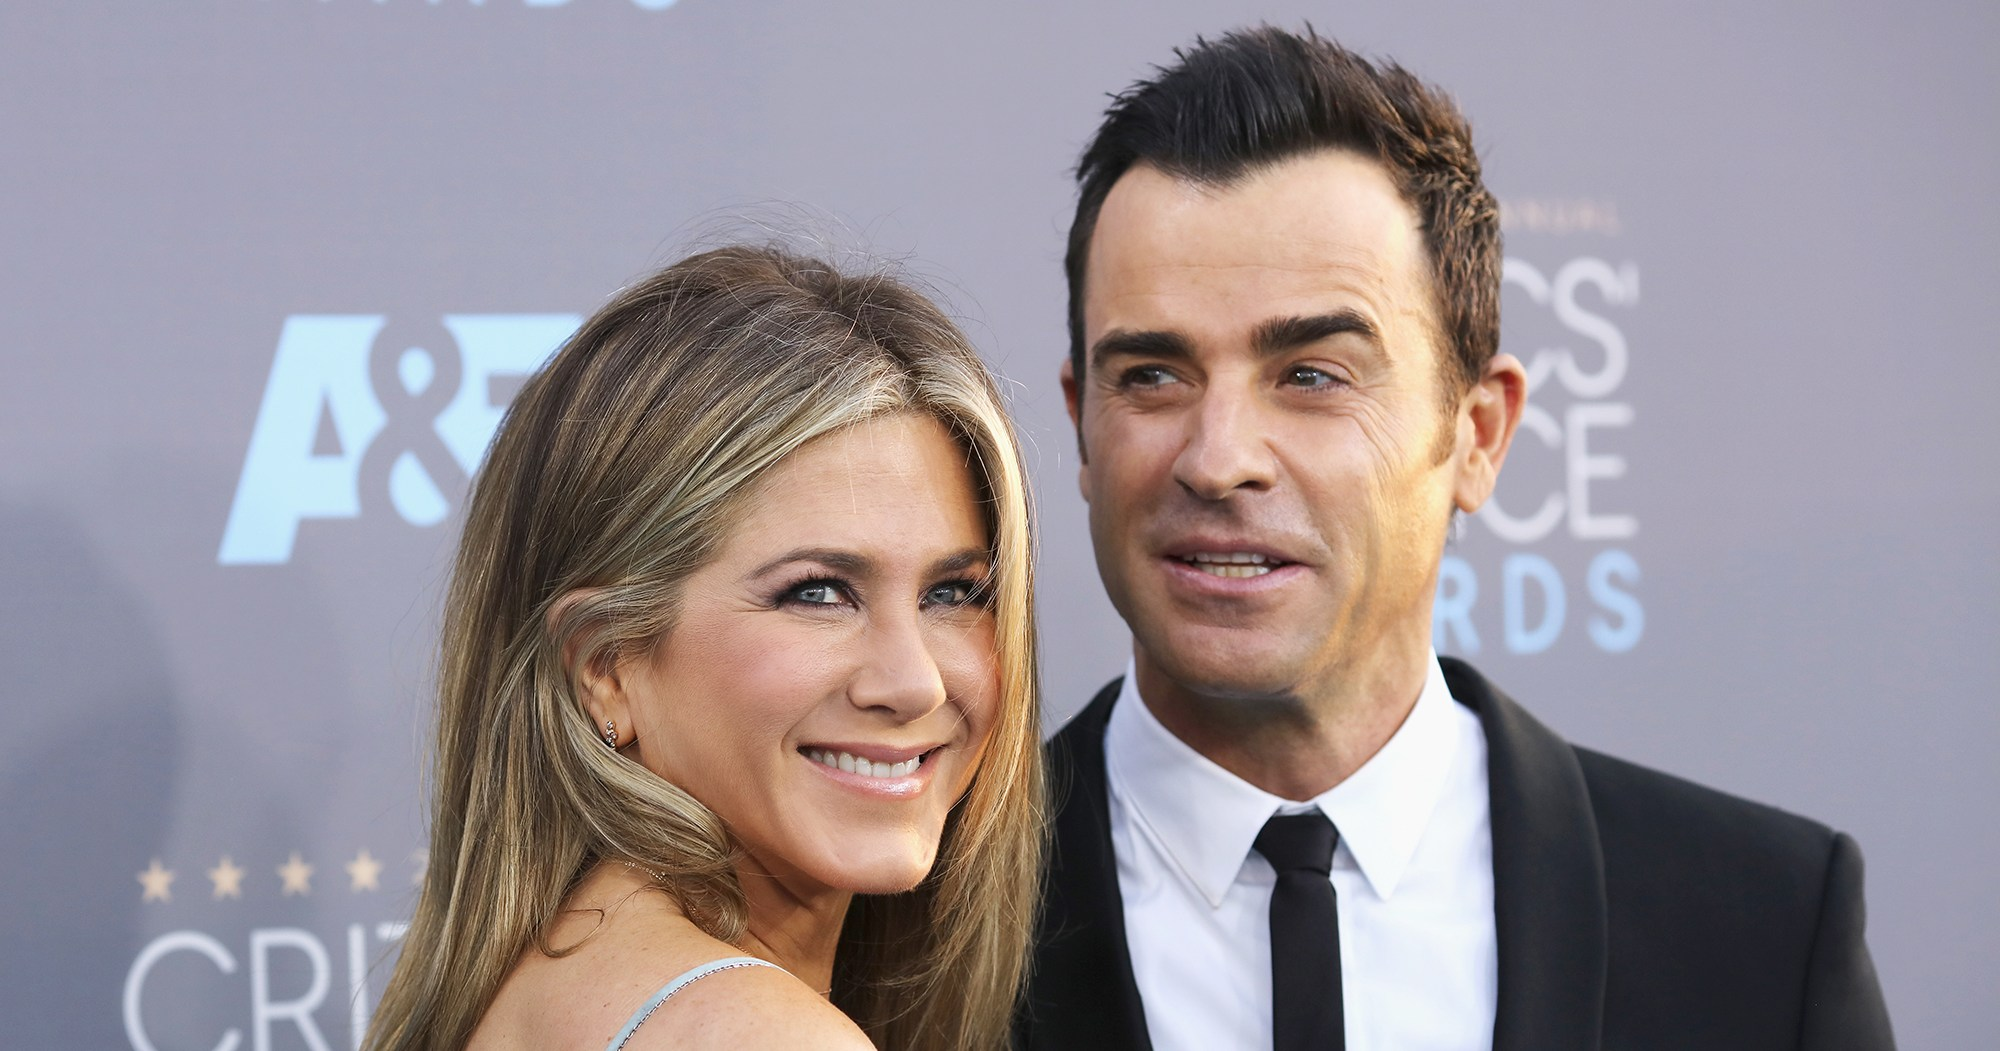 Justin Theroux Wishes 'Fierce' Ex Jennifer Aniston a Happy 50th Birthday